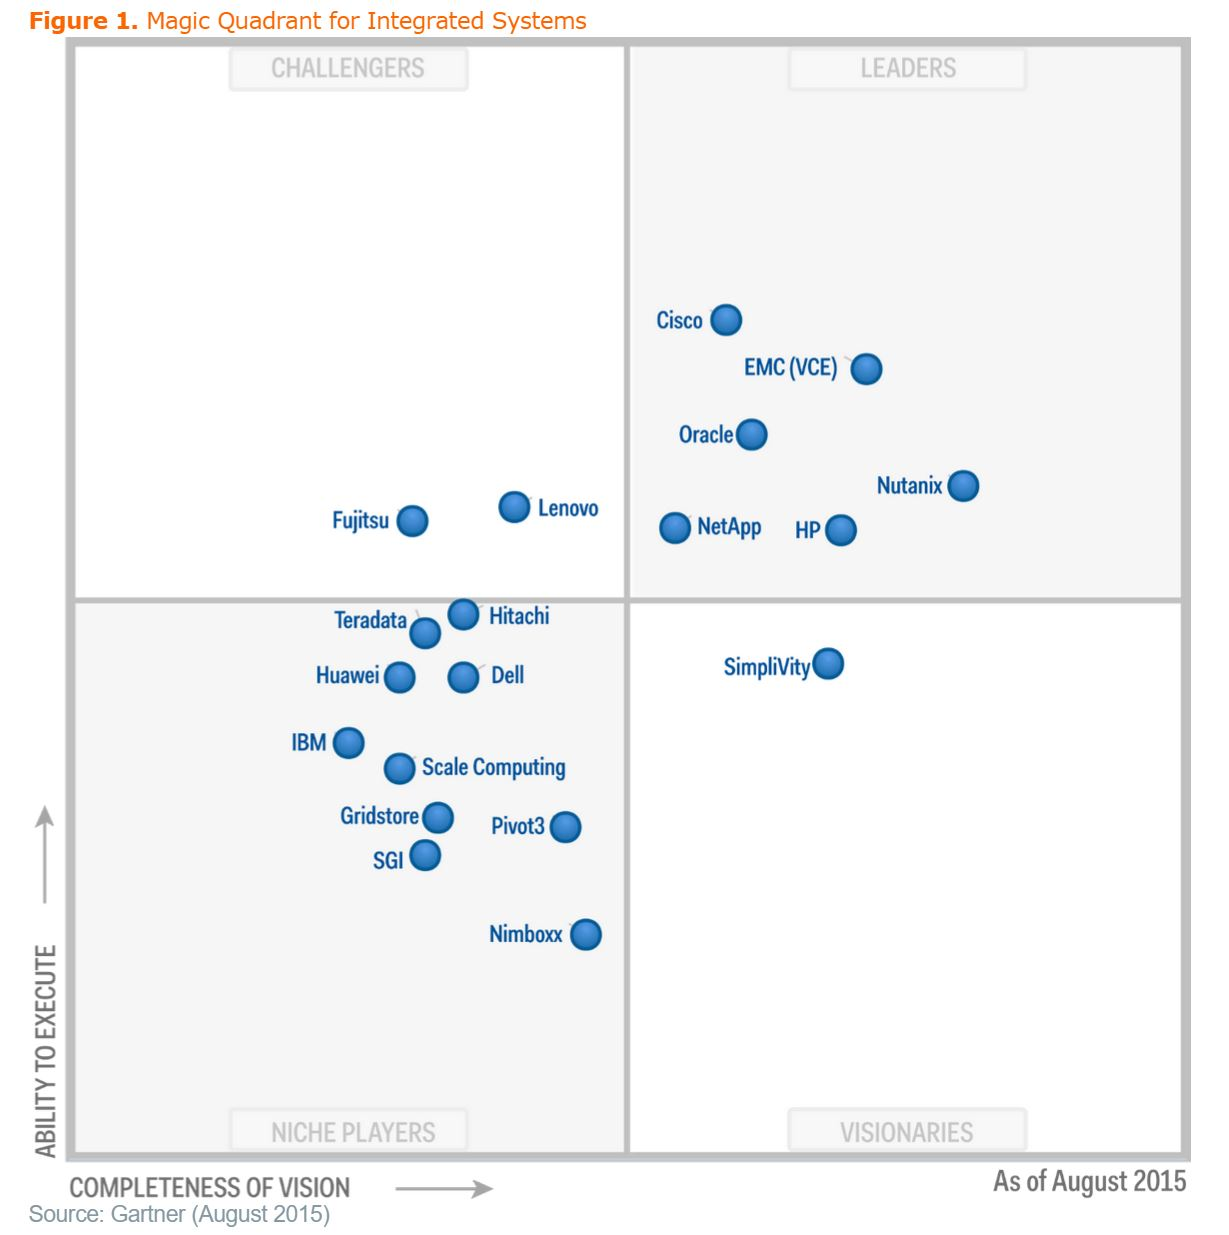 worksheet Quadrant Numbers gartner magic quadrant storage gaga mq integrated systems aug 2015